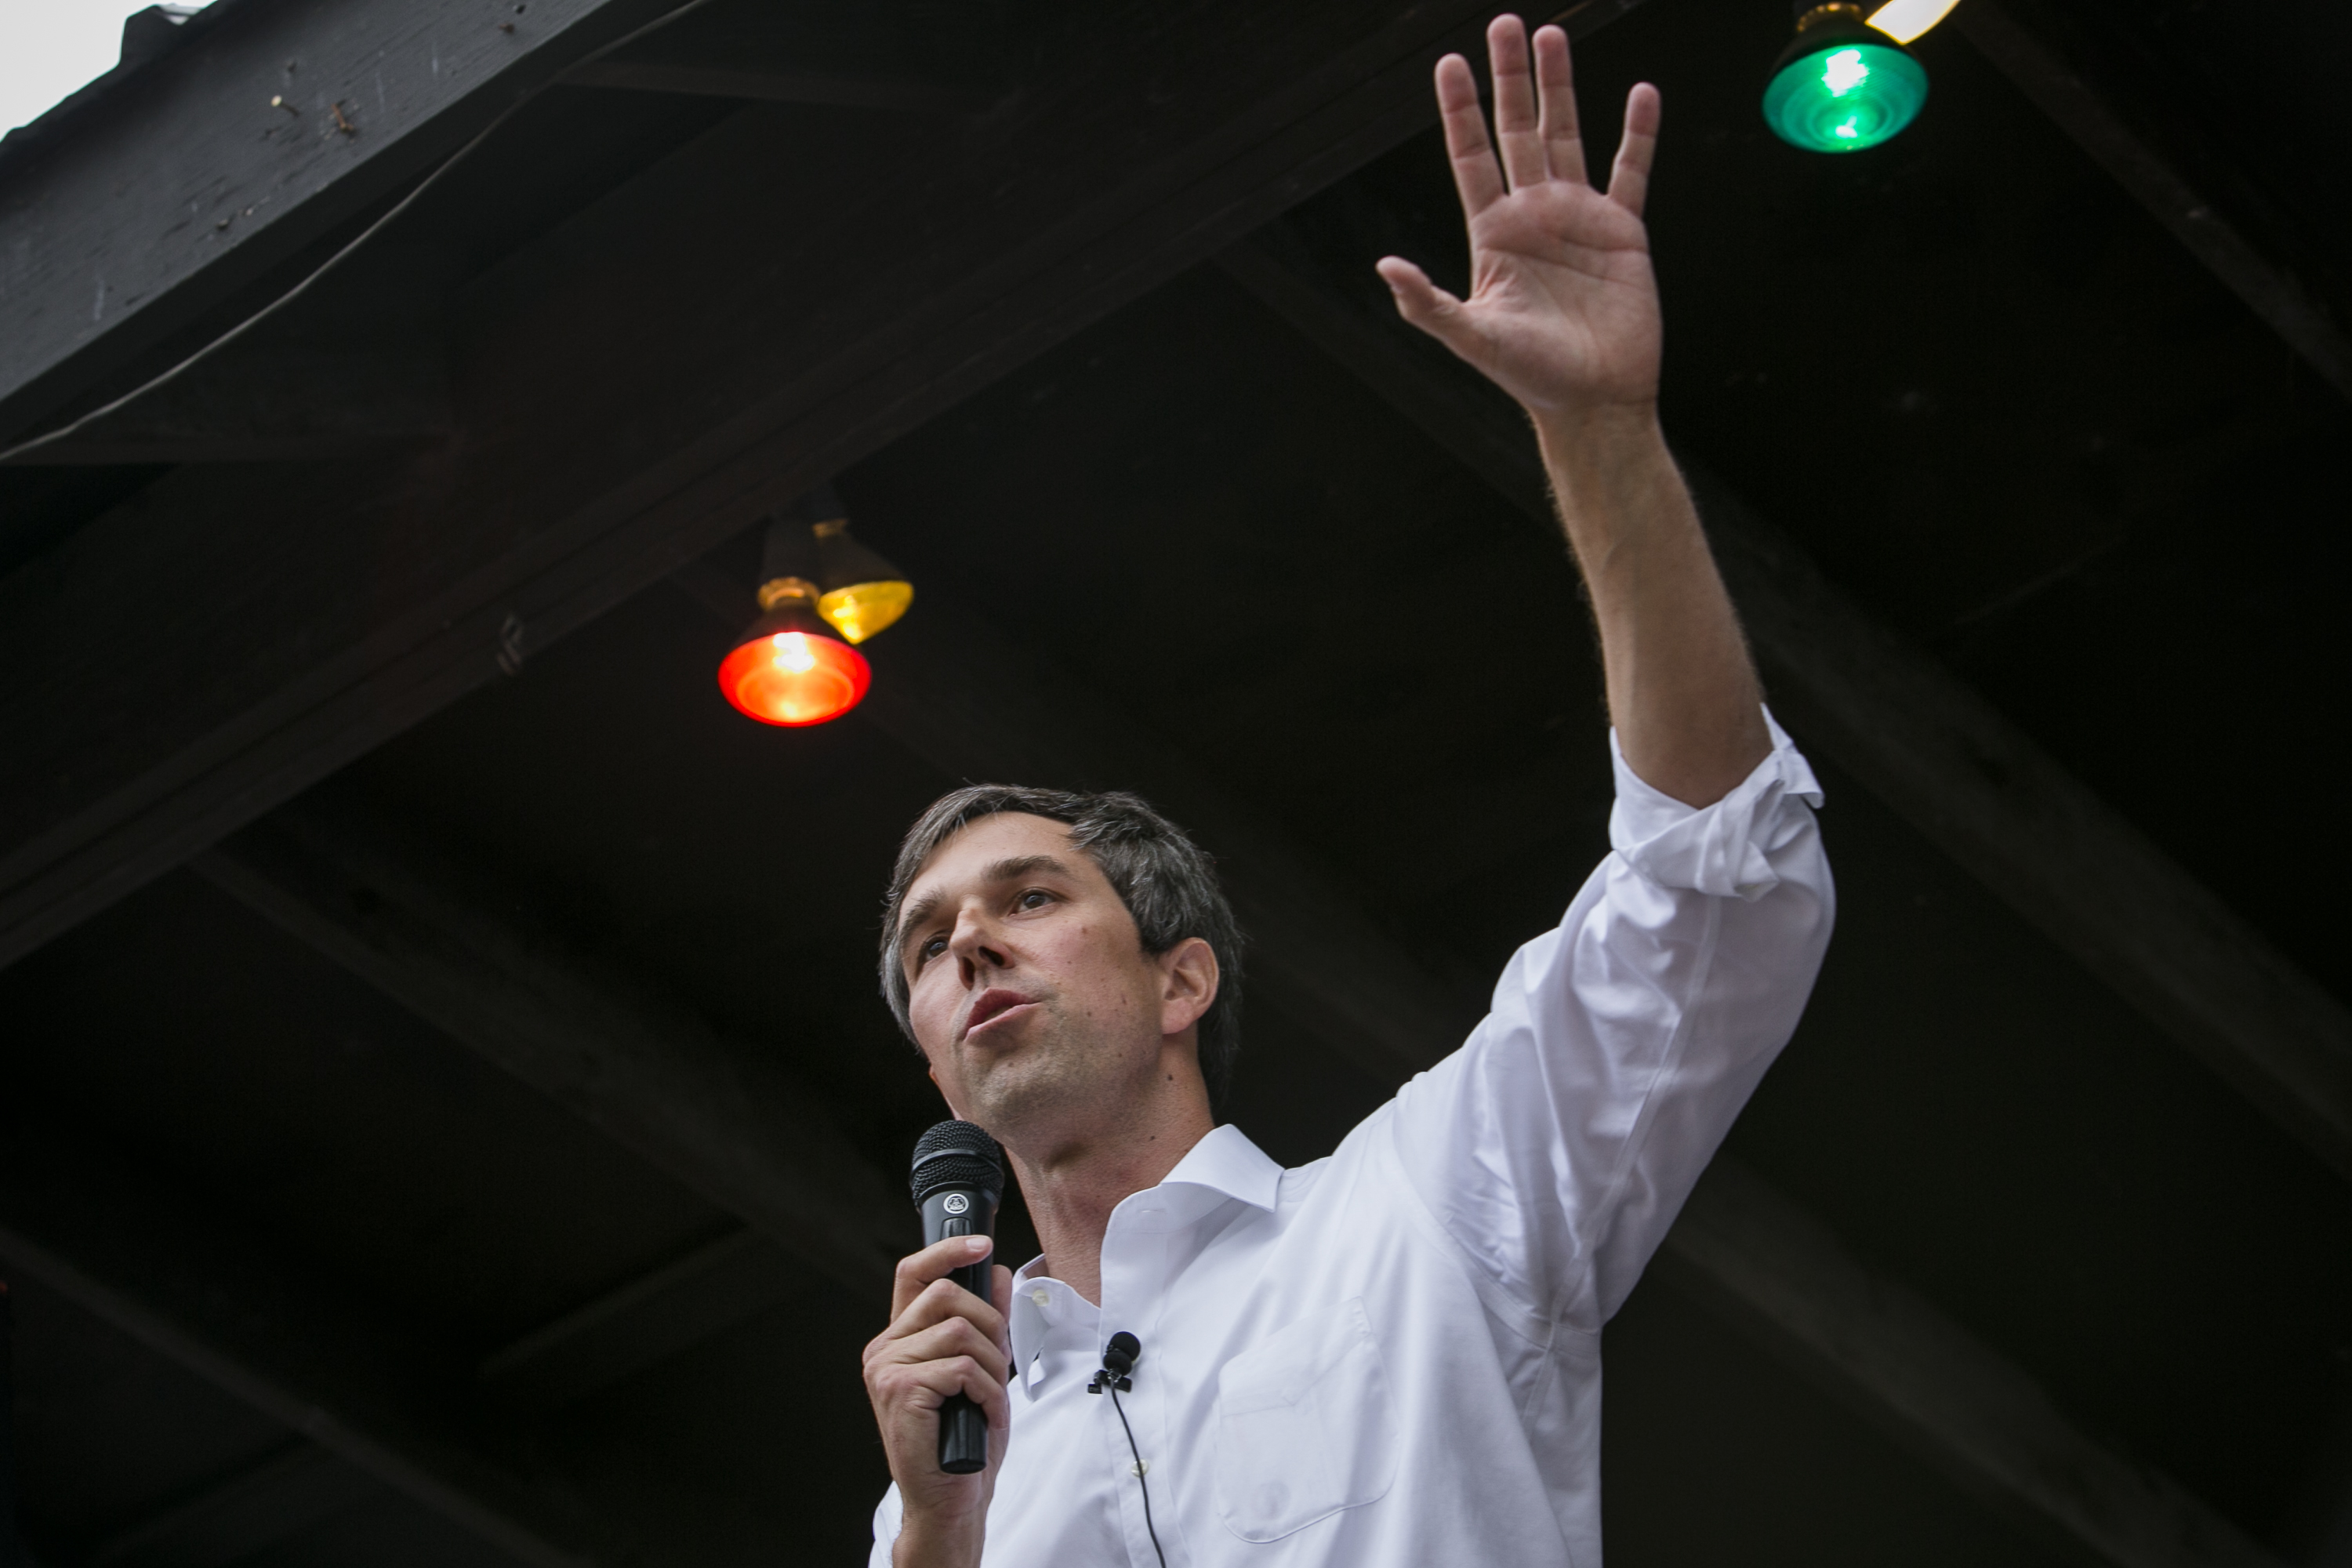 Rep. Beto O'Rourke (D-TX) speaks to a group of supporters at Scholz Garten on April 1, 2017 in Austin, Texas. Drew Anthony Smith—Getty Images